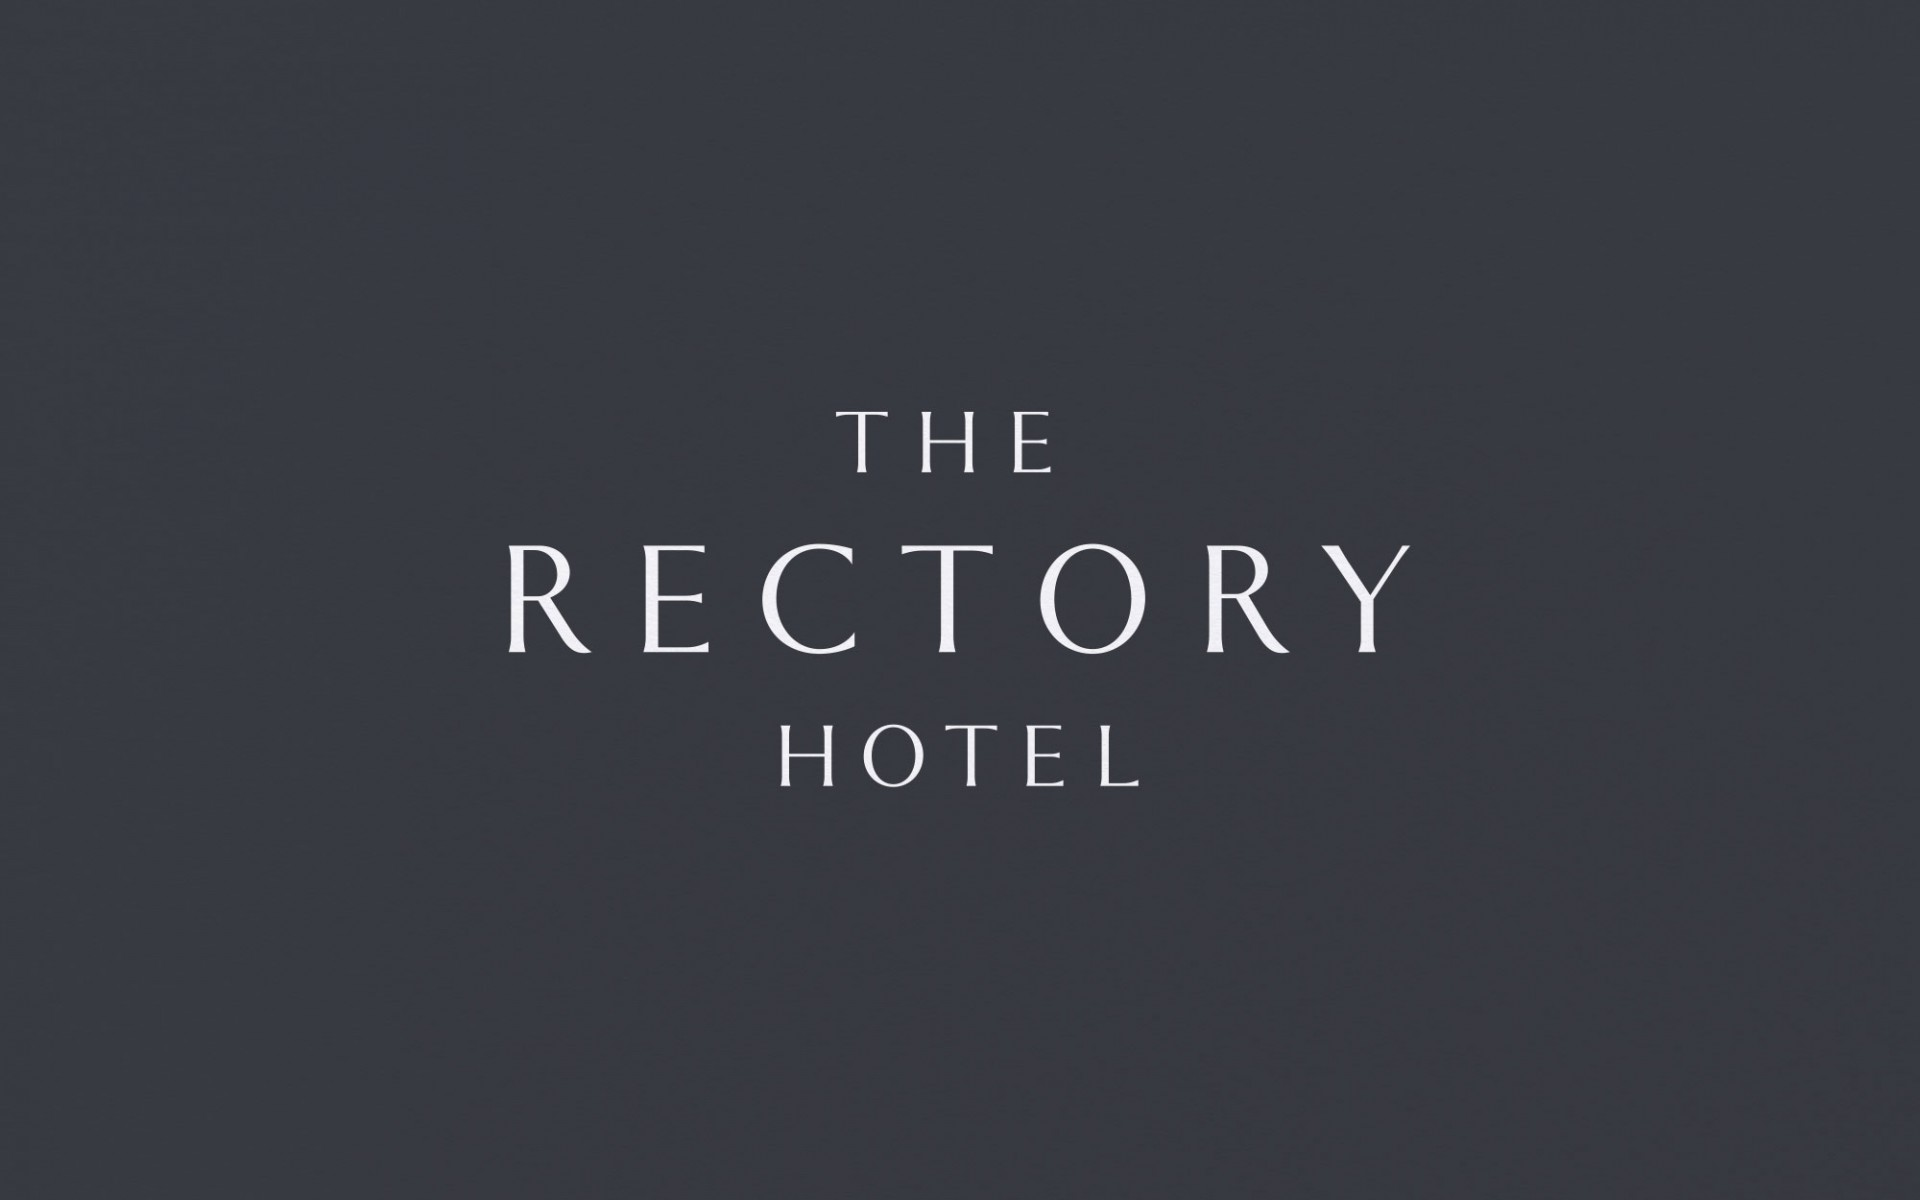 StudioBOWDEN The Rectory Hotel